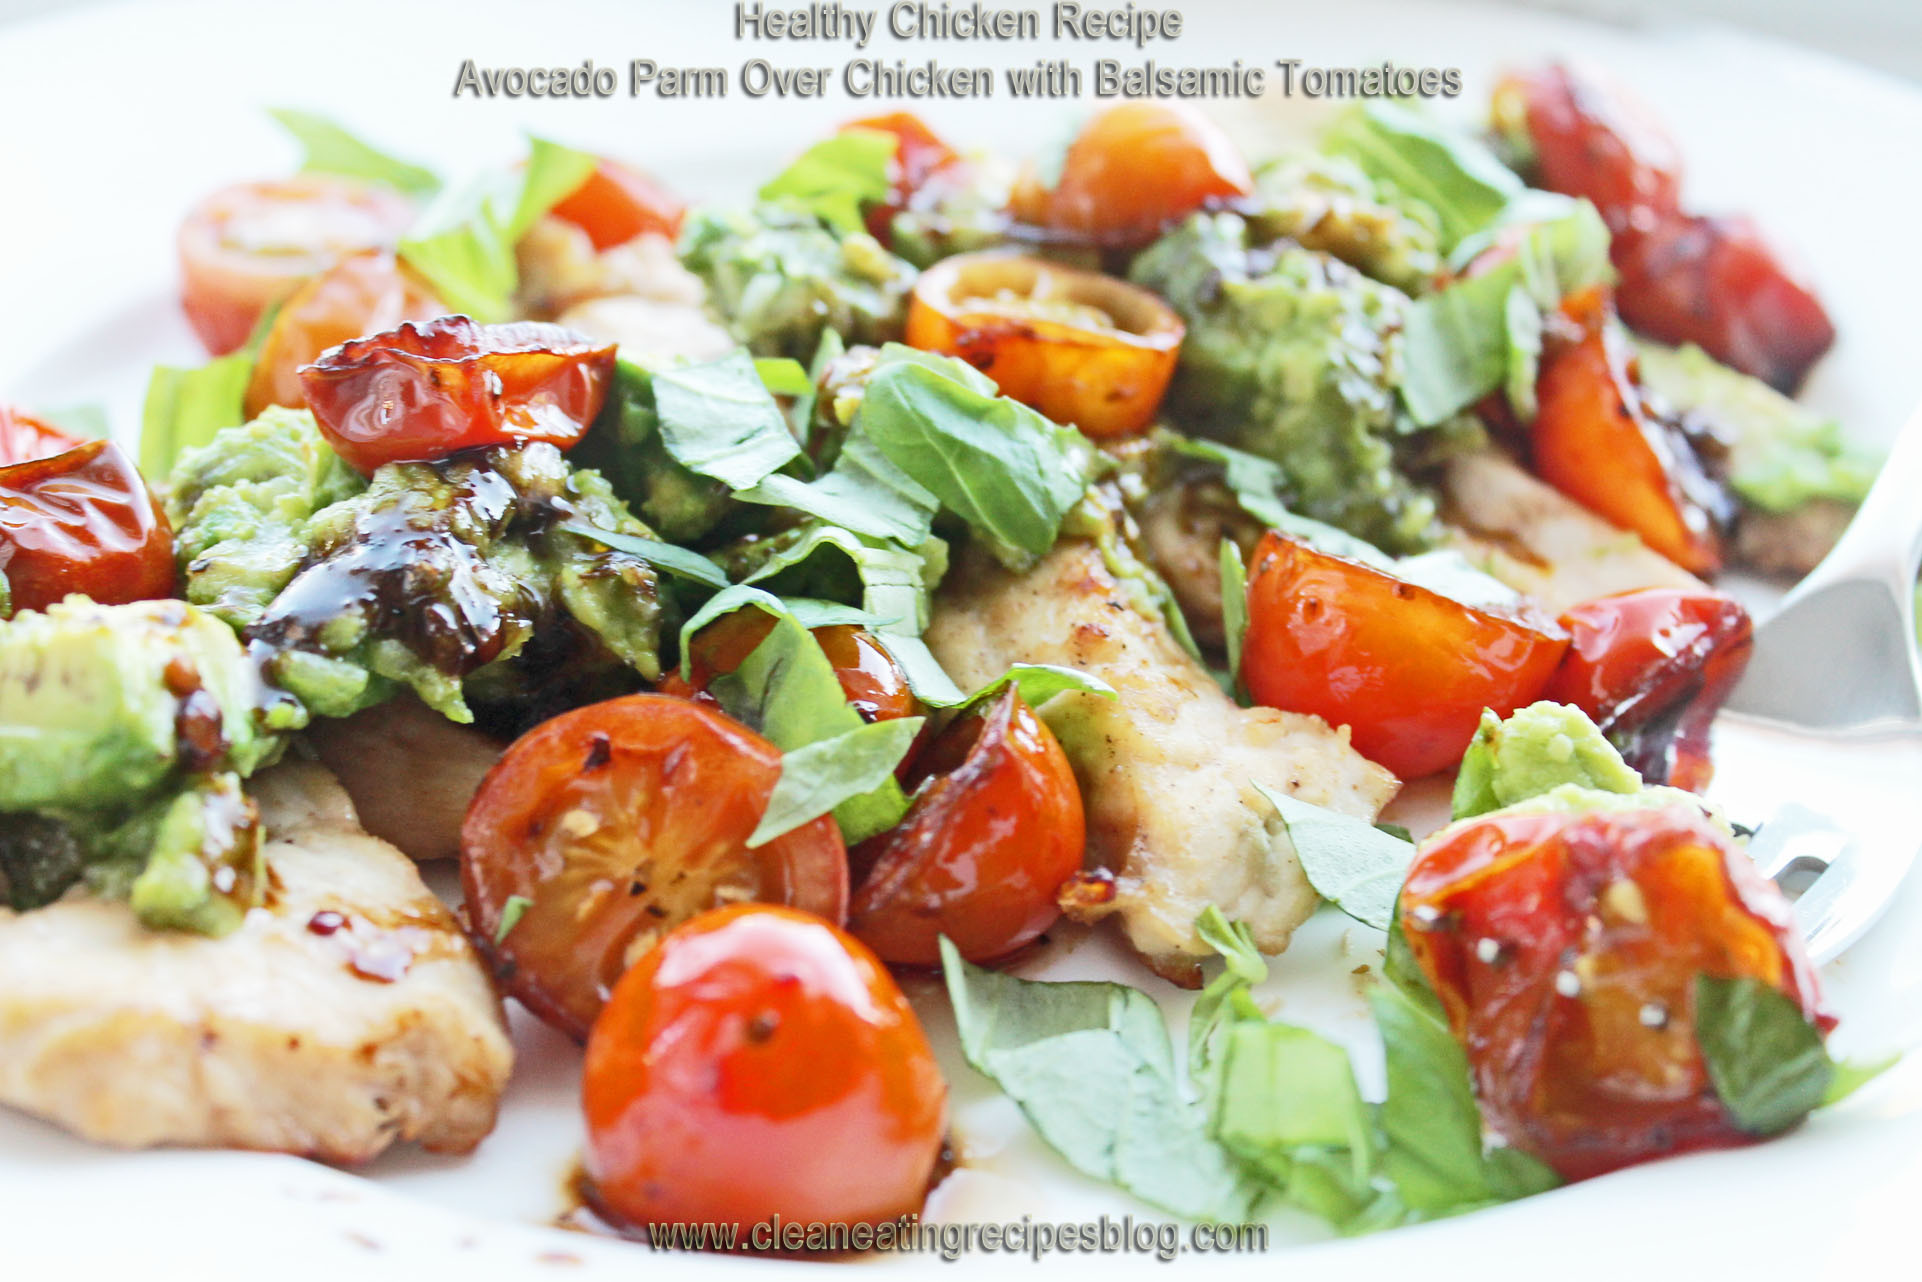 Healthy Chicken And Avocado Recipes  Healthy Chicken Recipe for Clean Eating